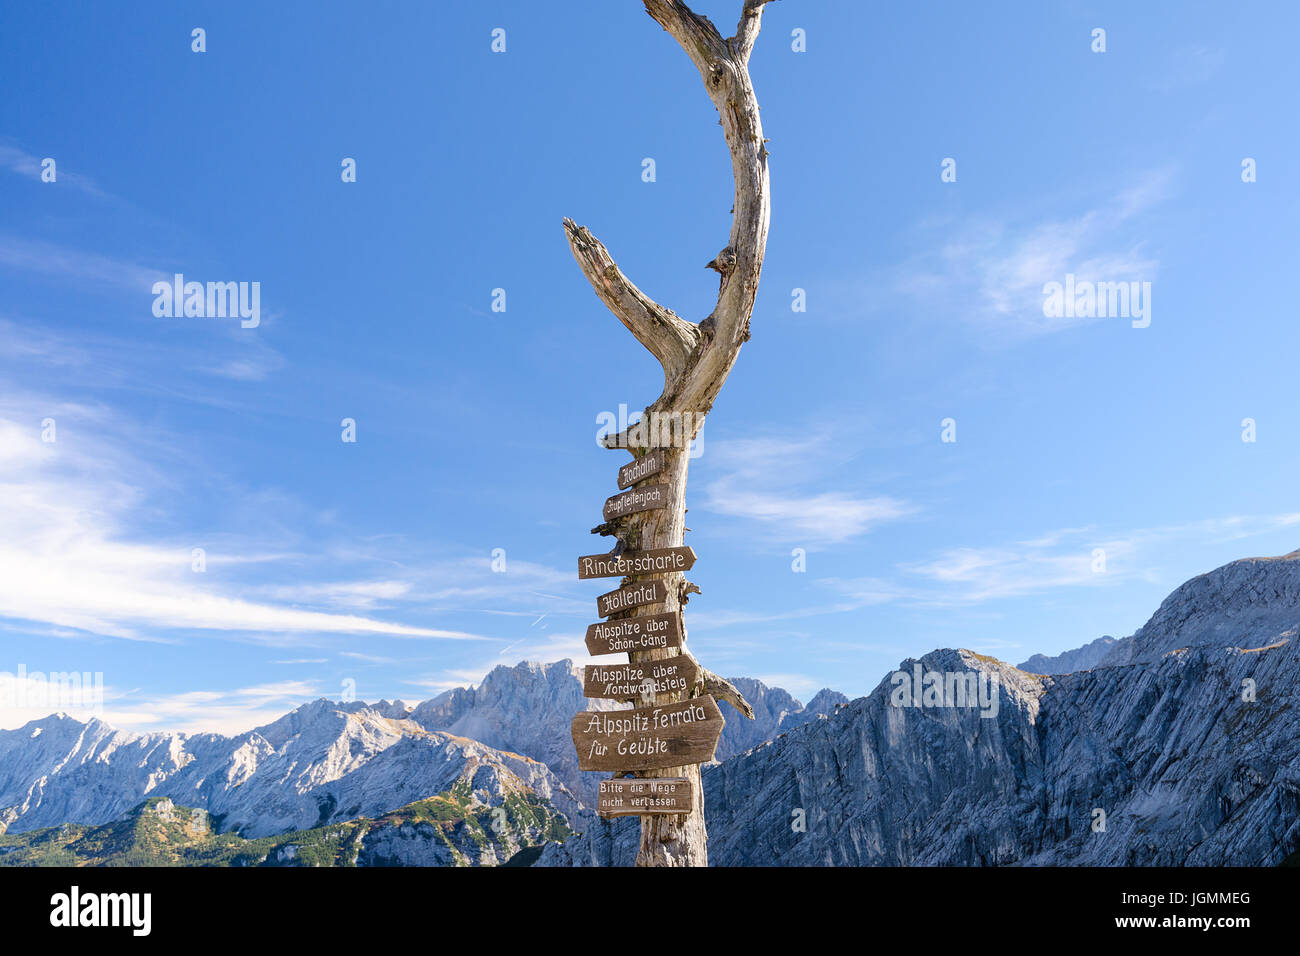 Wooden signpost with route arrows on dry tree in German Bavarian Alps mountains on Alpspitze peak - Stock Image